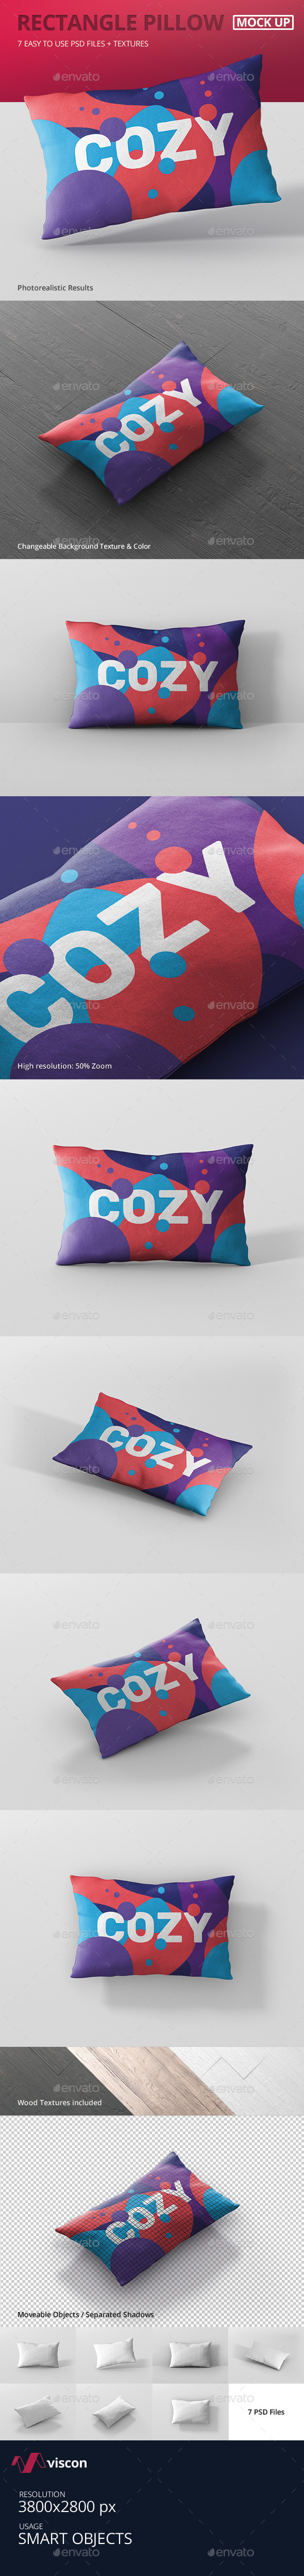 Pillow Mockup - Rectangle - Miscellaneous Product Mock-Ups